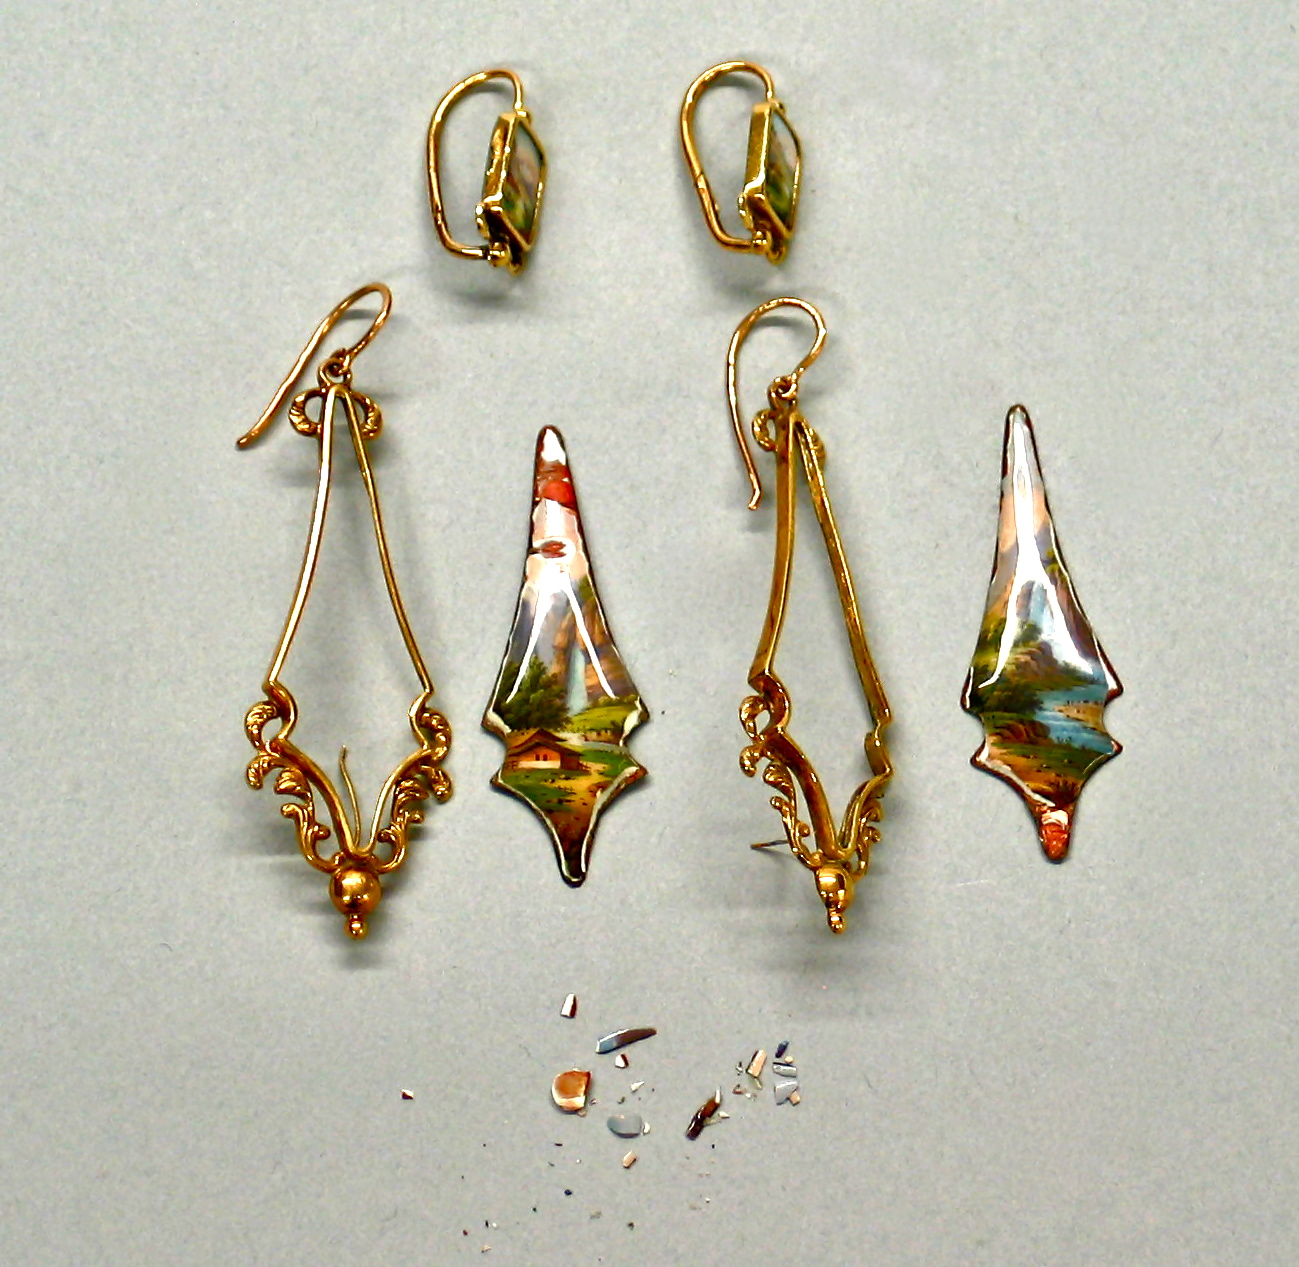 Pair of Earrings. Jewelry Repair and Restoration.